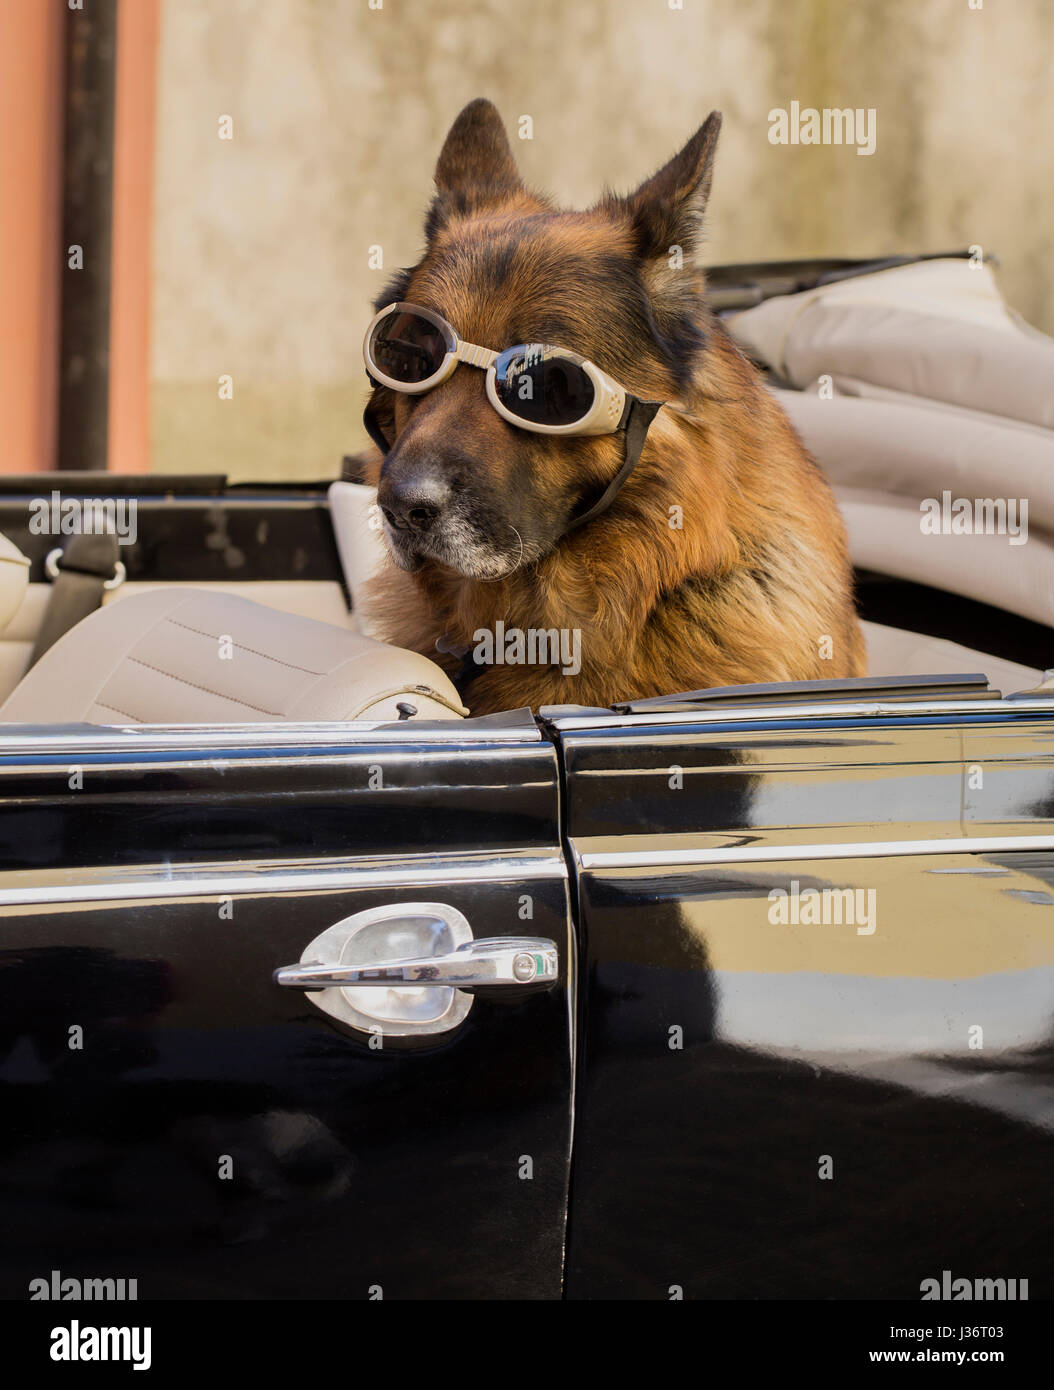 Dog in a car with goggles. - Stock Image